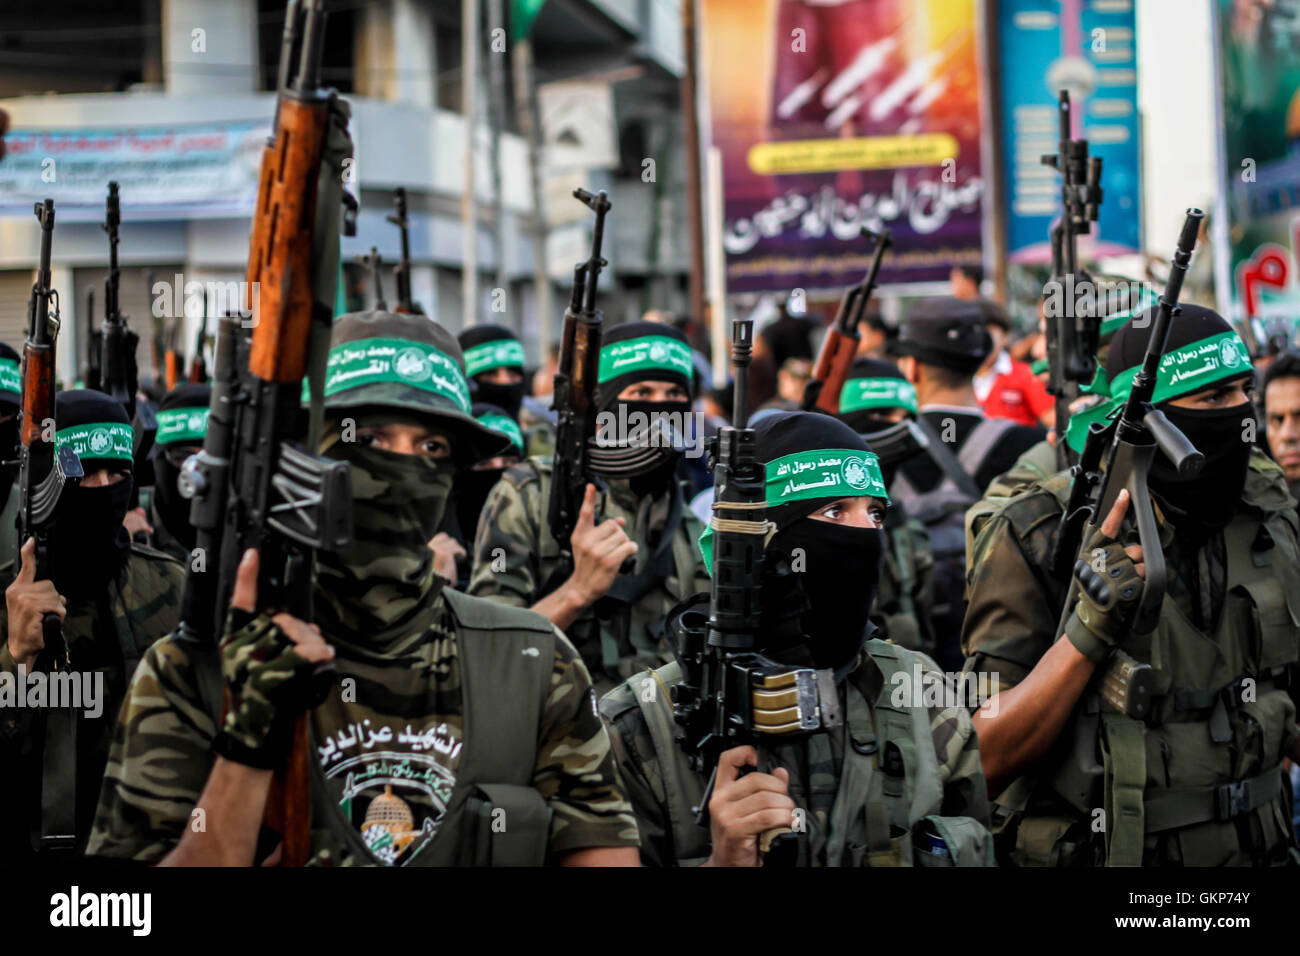 August 22, 2016 - ''Al-Qassam Brigades, the military wing of Hamas organized a military parade in Rafah southern Stock Photo